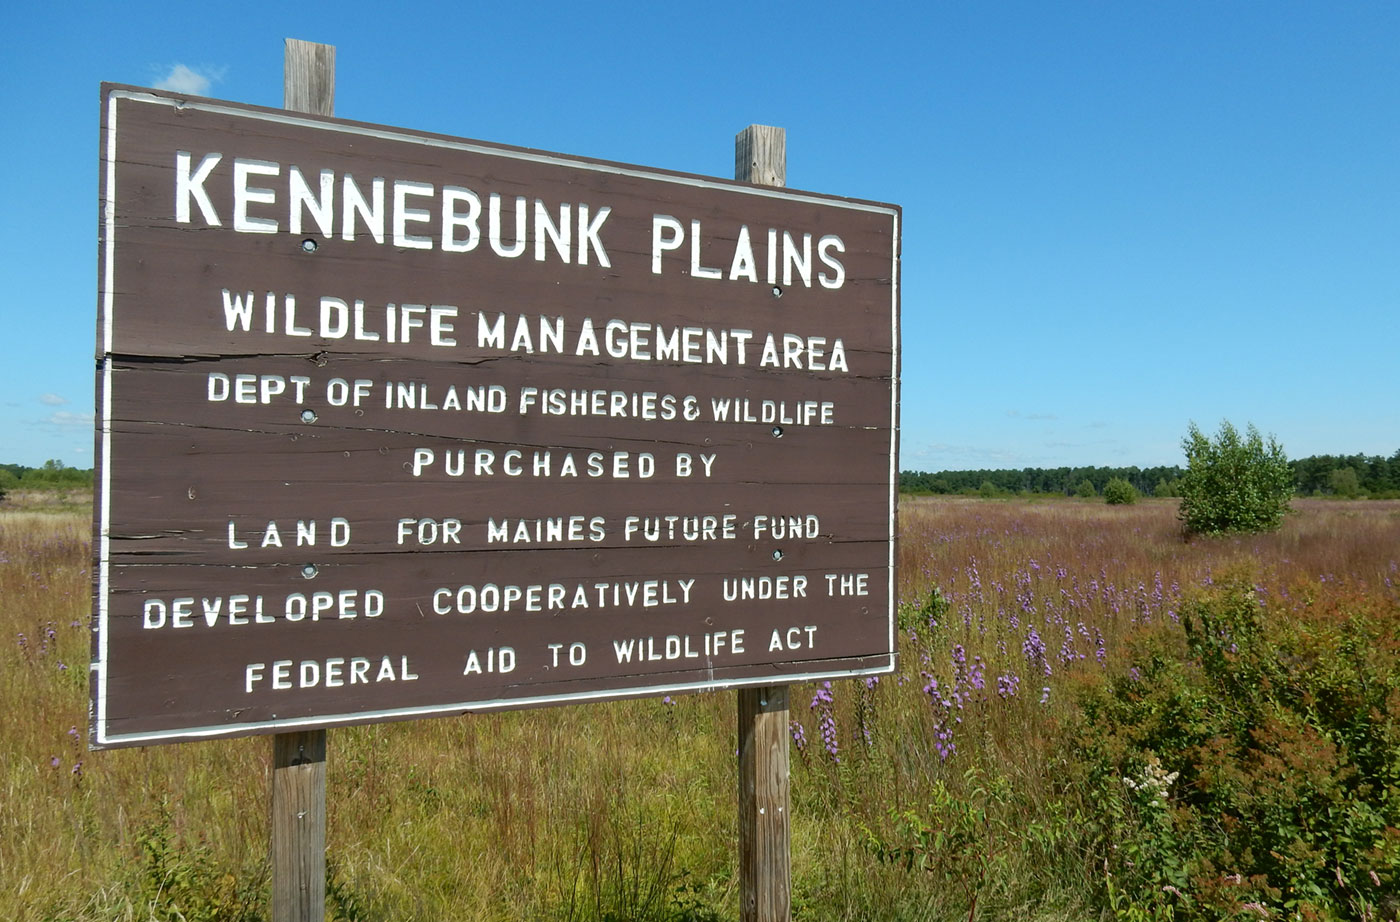 Kennebunk Plains